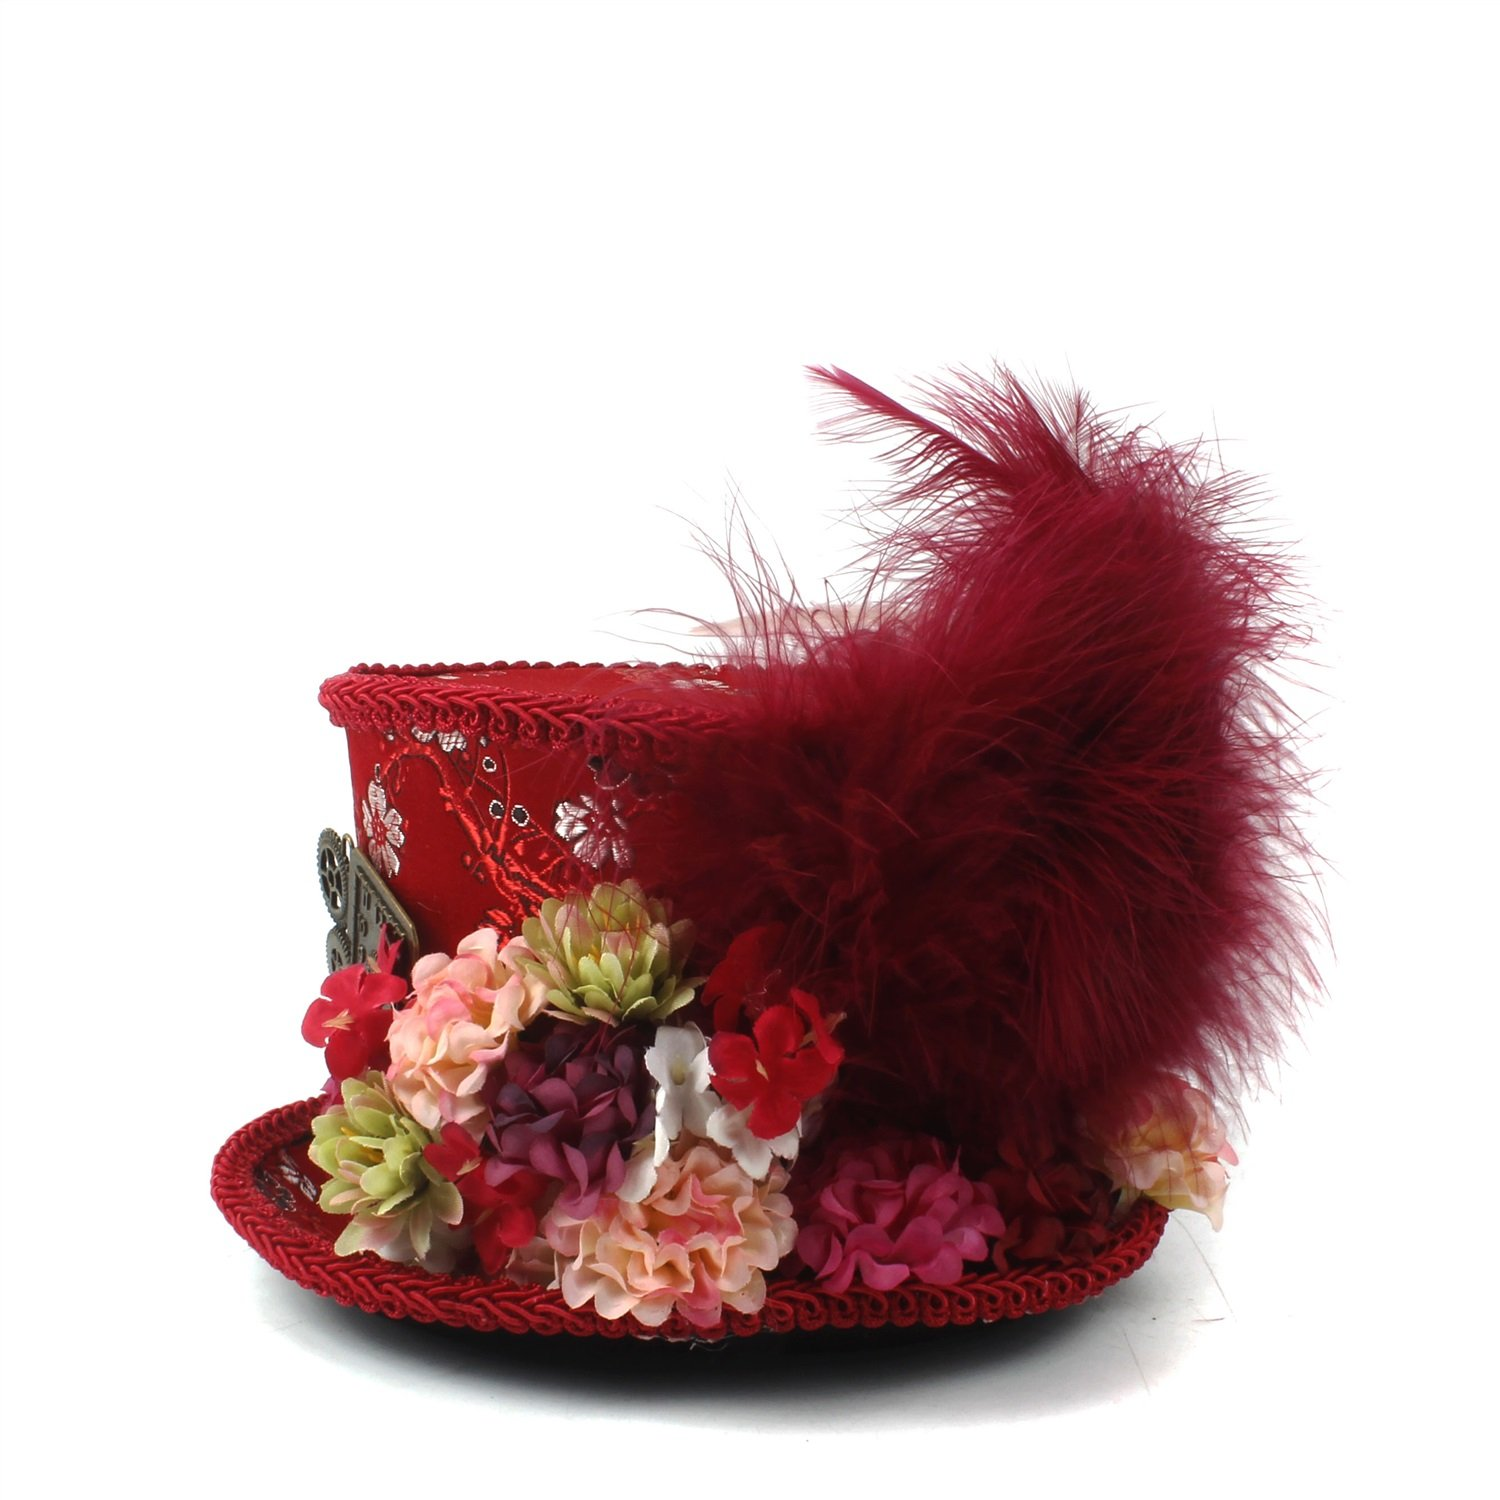 LL Women;s Red Mini Top Hat, Antique Red and Ivory Tea Cup Hat Mad Hatter Hat, Tea Hat,Mad Hatter Tea Party (Color : Red, Size : 25-30cm) by LL (Image #2)